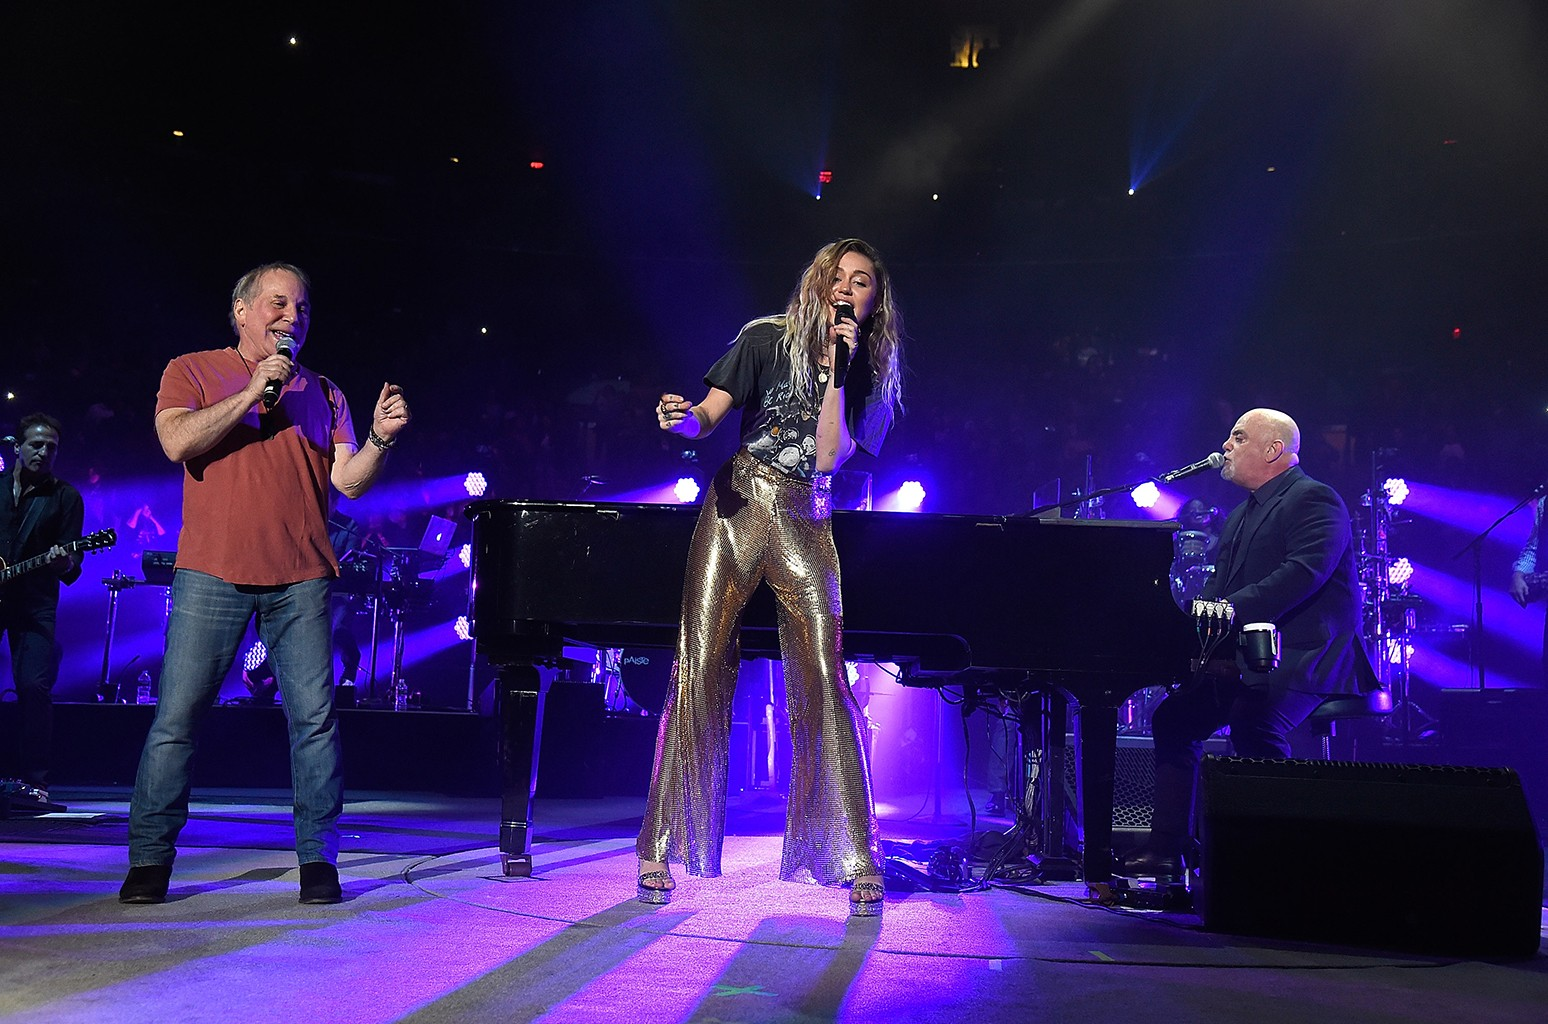 Paul Simon, Miley Cyrus and Billy Joel